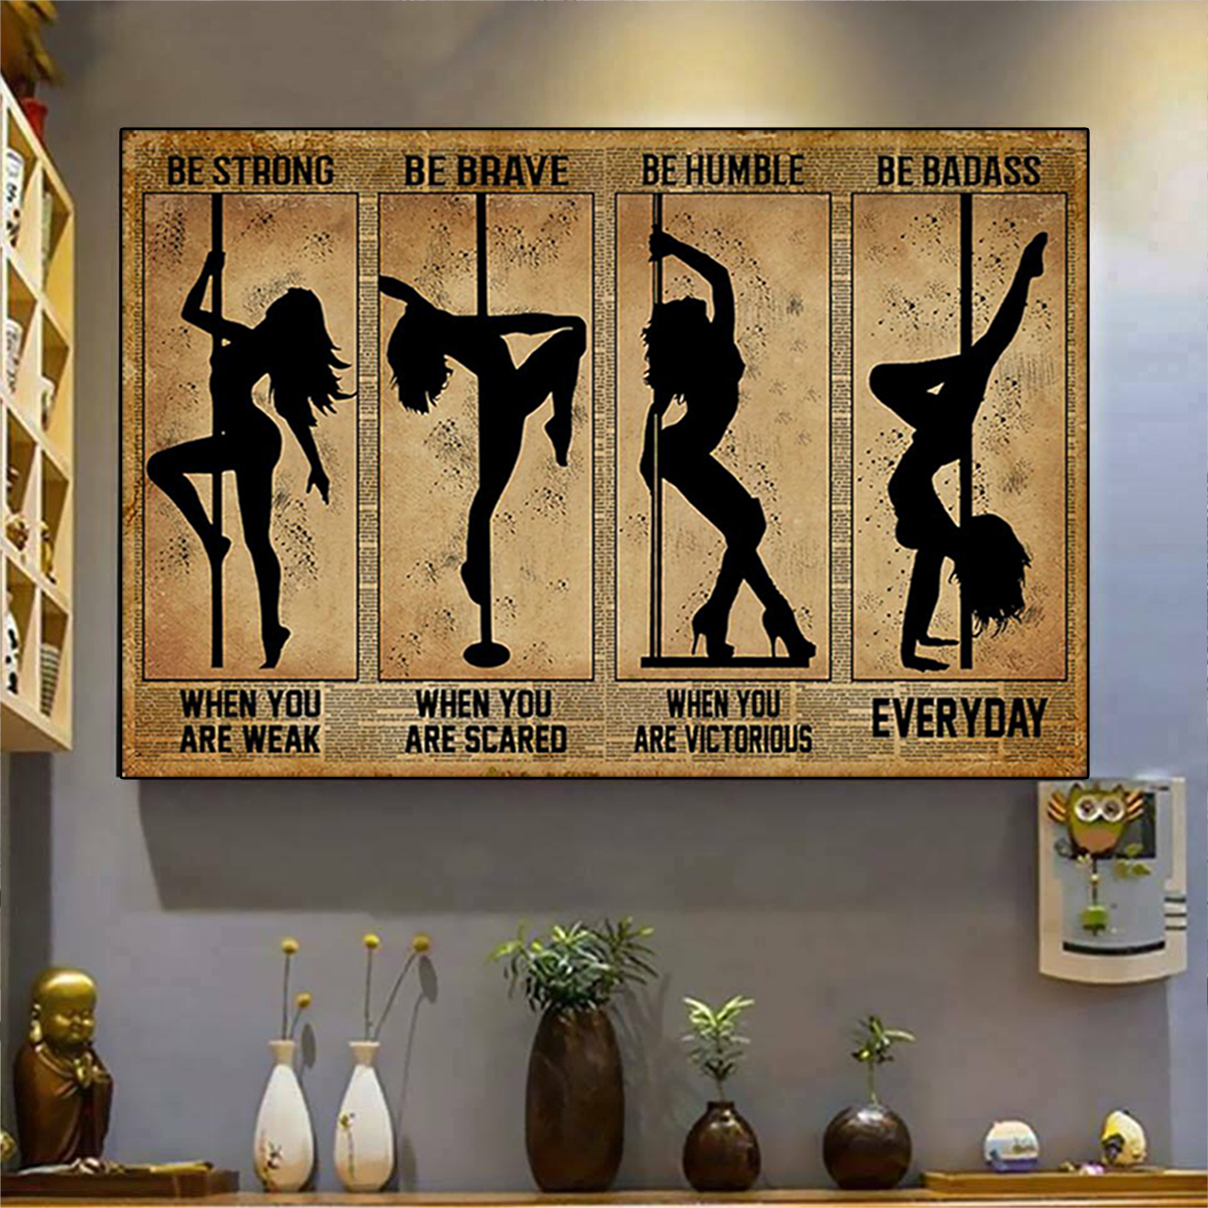 Pole dance be strong be brave be humble be badass poster A2